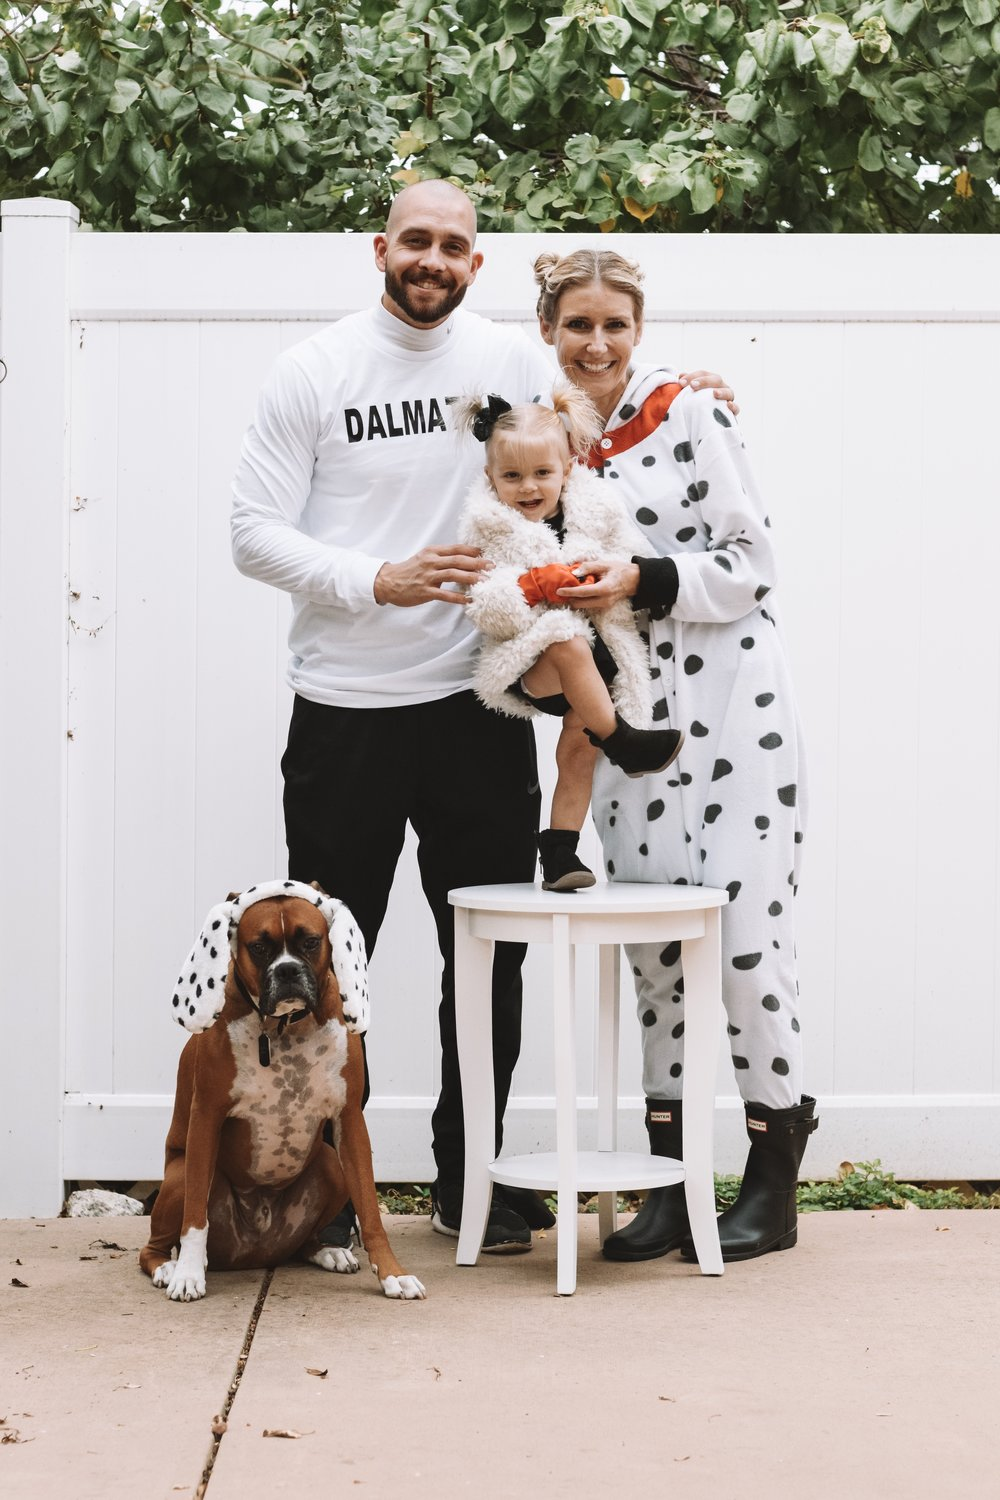 101 Dalmatians Family Halloween Costumes - Cute Family Pregnancy Halloween Costumes - The Overwhelmed Mommy Blogger